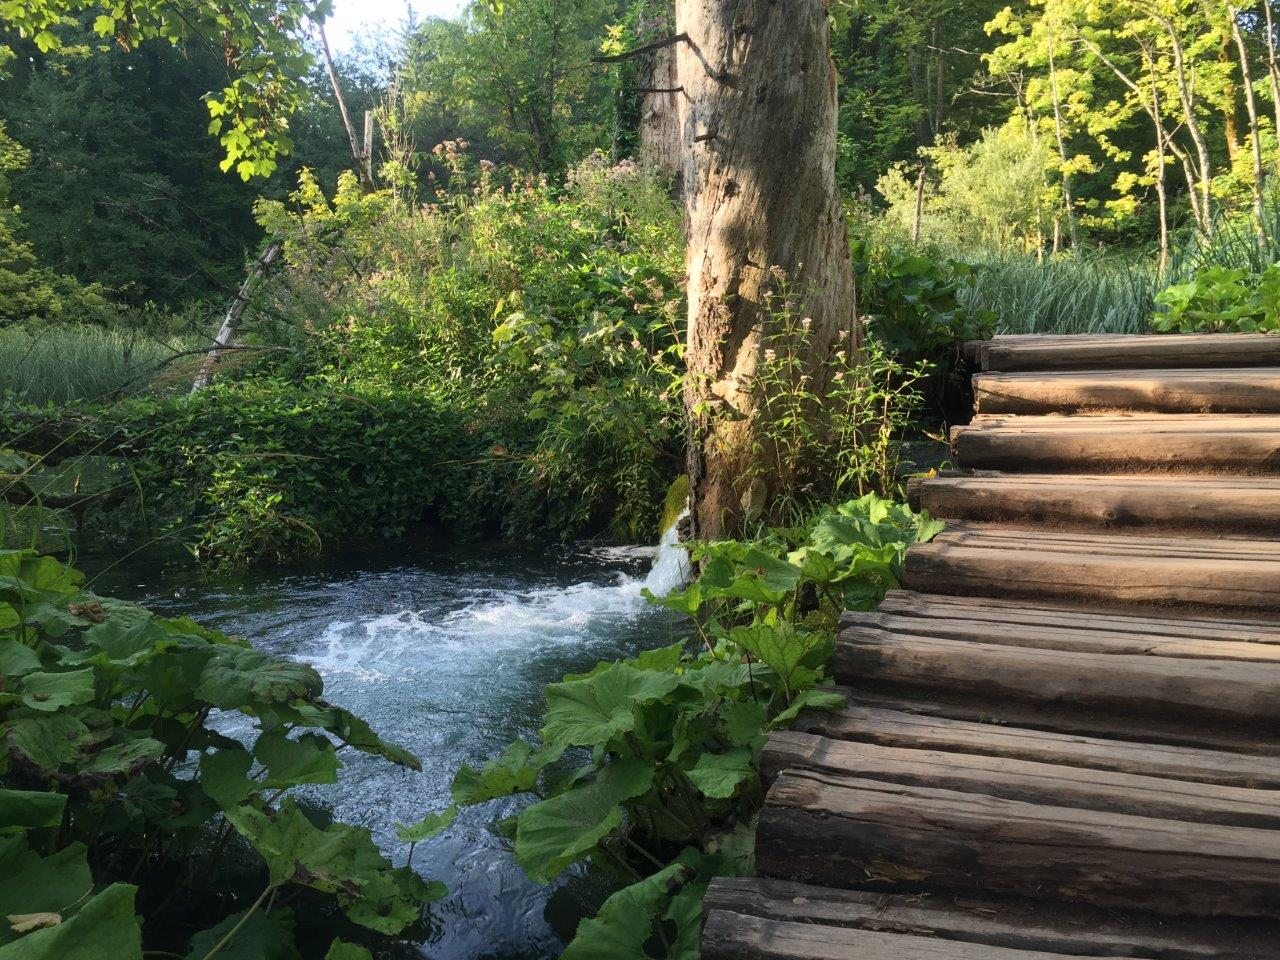 Raised wooden pathway of Plitvice National Park